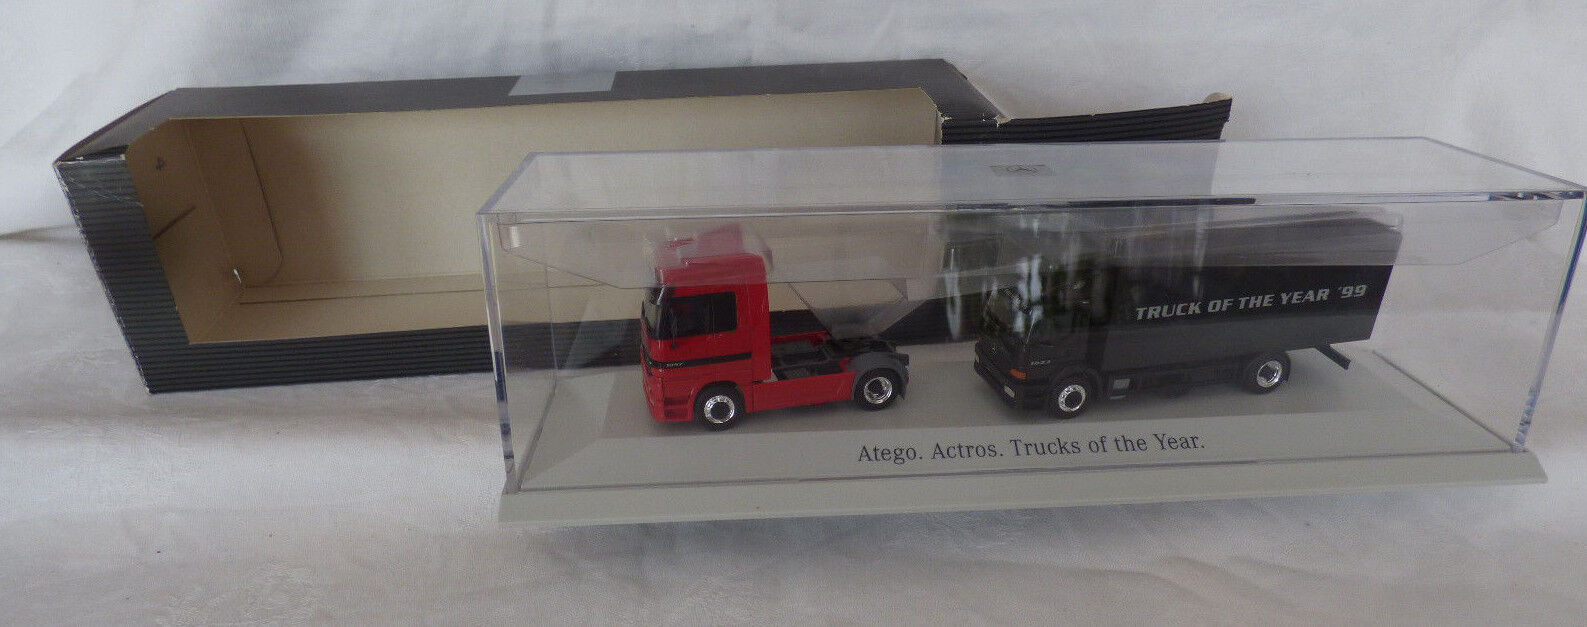 Herpa 1 87 h0 b66000322 Mercedes-Benz-Collection MB Atego. actros. trucks OVP